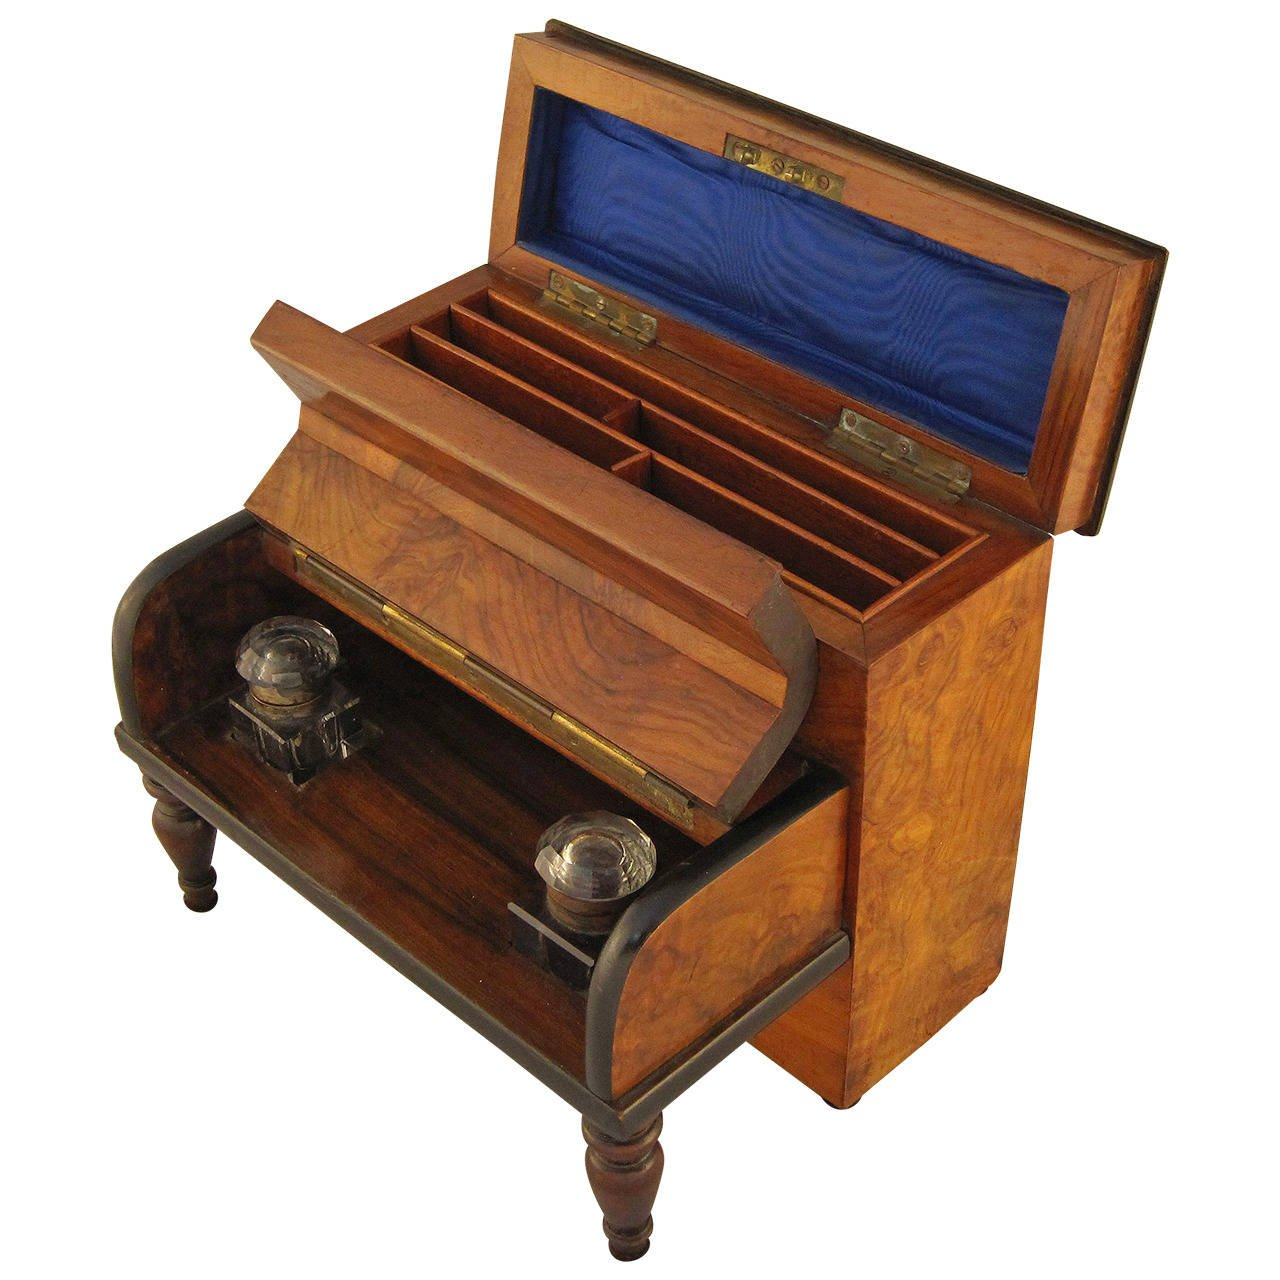 English Desk Set with Inkwells and Stationery Box - English Desk Set With Inkwells And Stationery Box - The Antique Swan